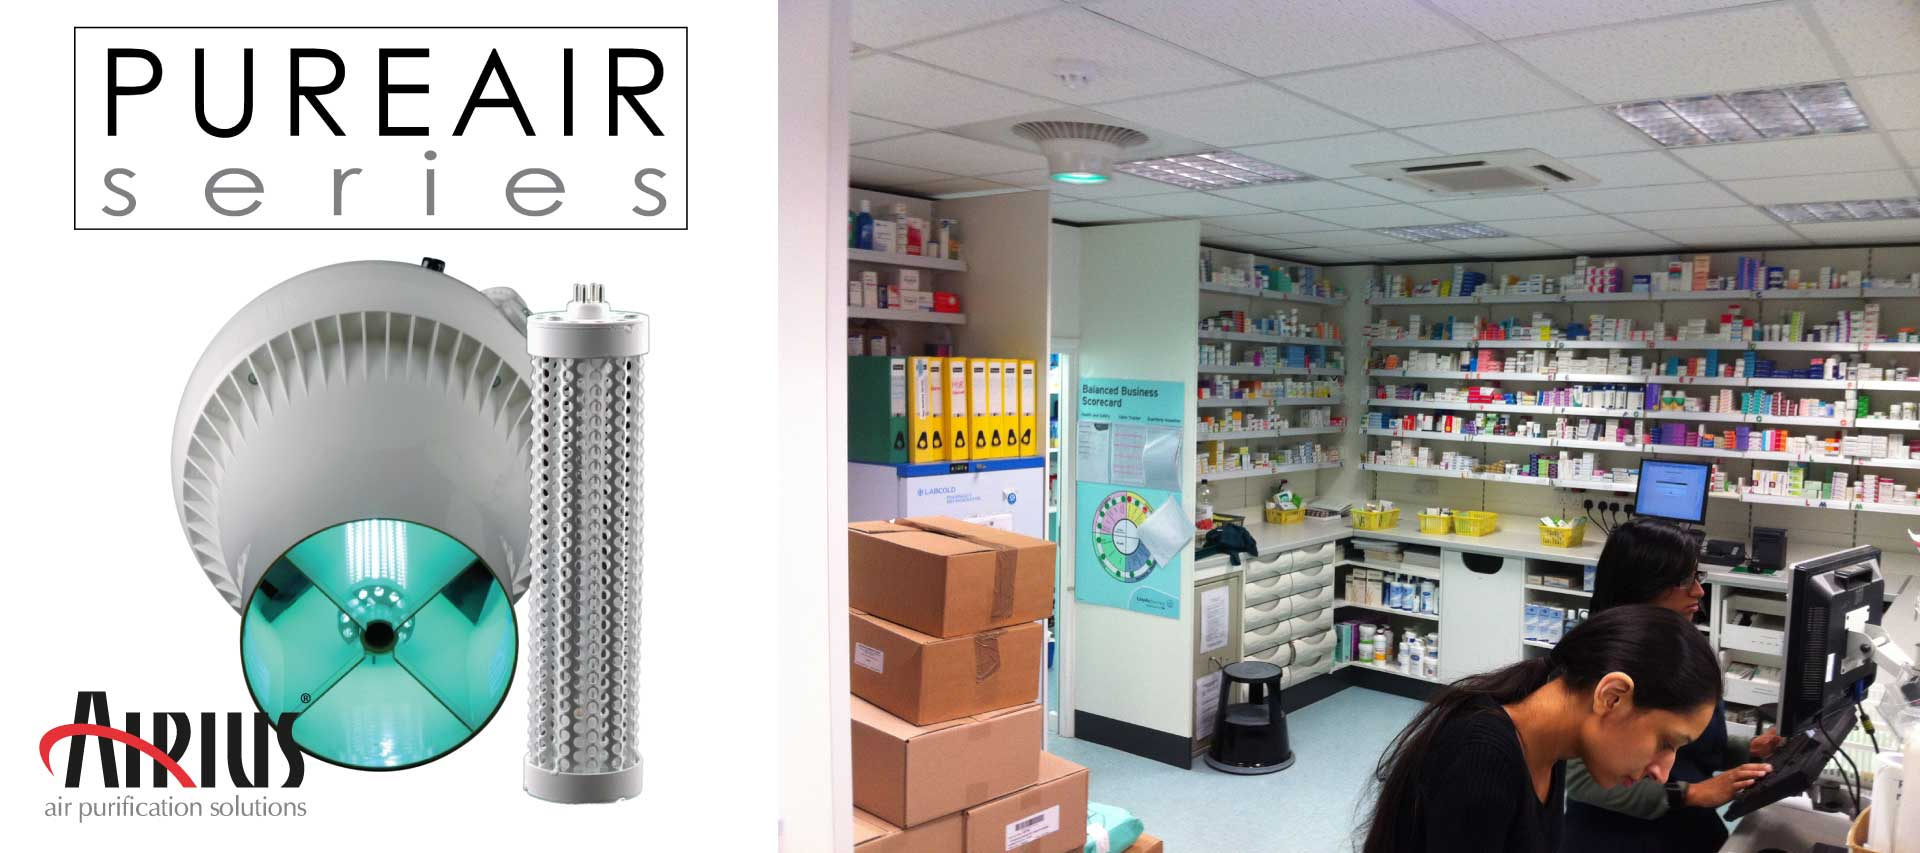 Coronavirus-Protection-and-the-PureAir-Series-from-Airius